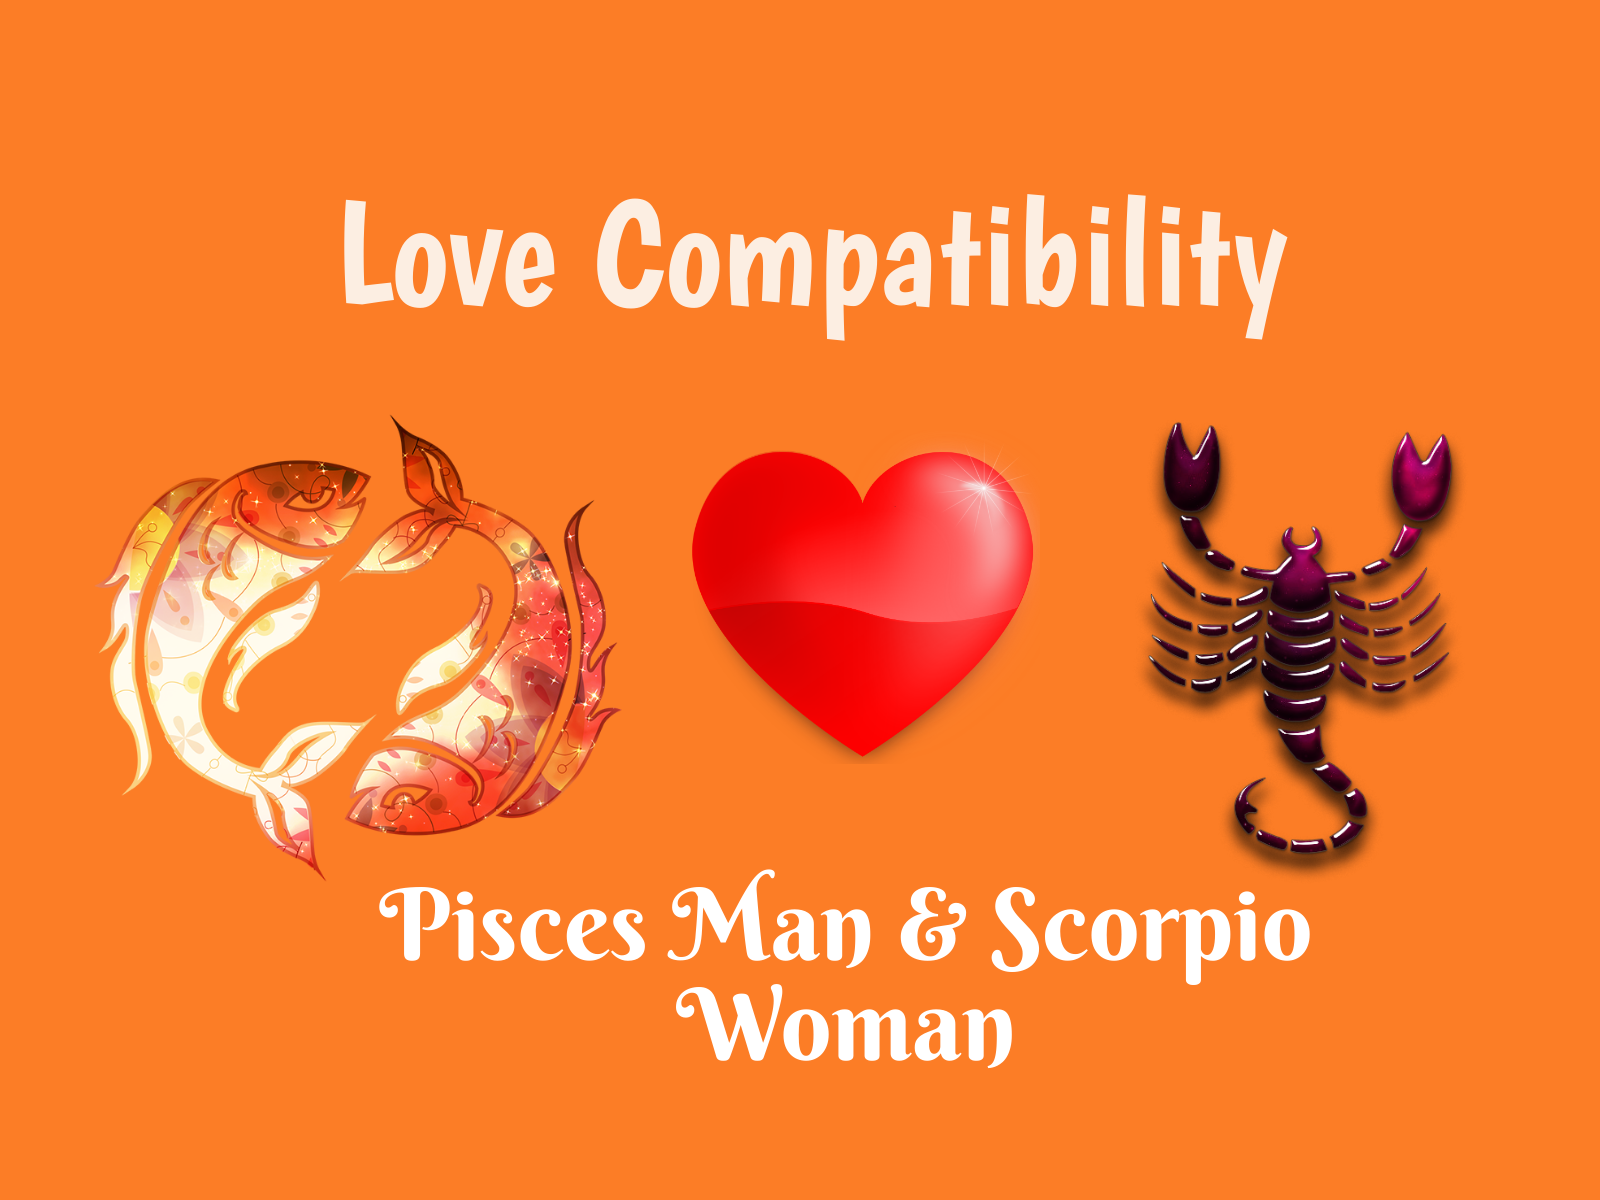 Pisces Man and Scorpio Woman